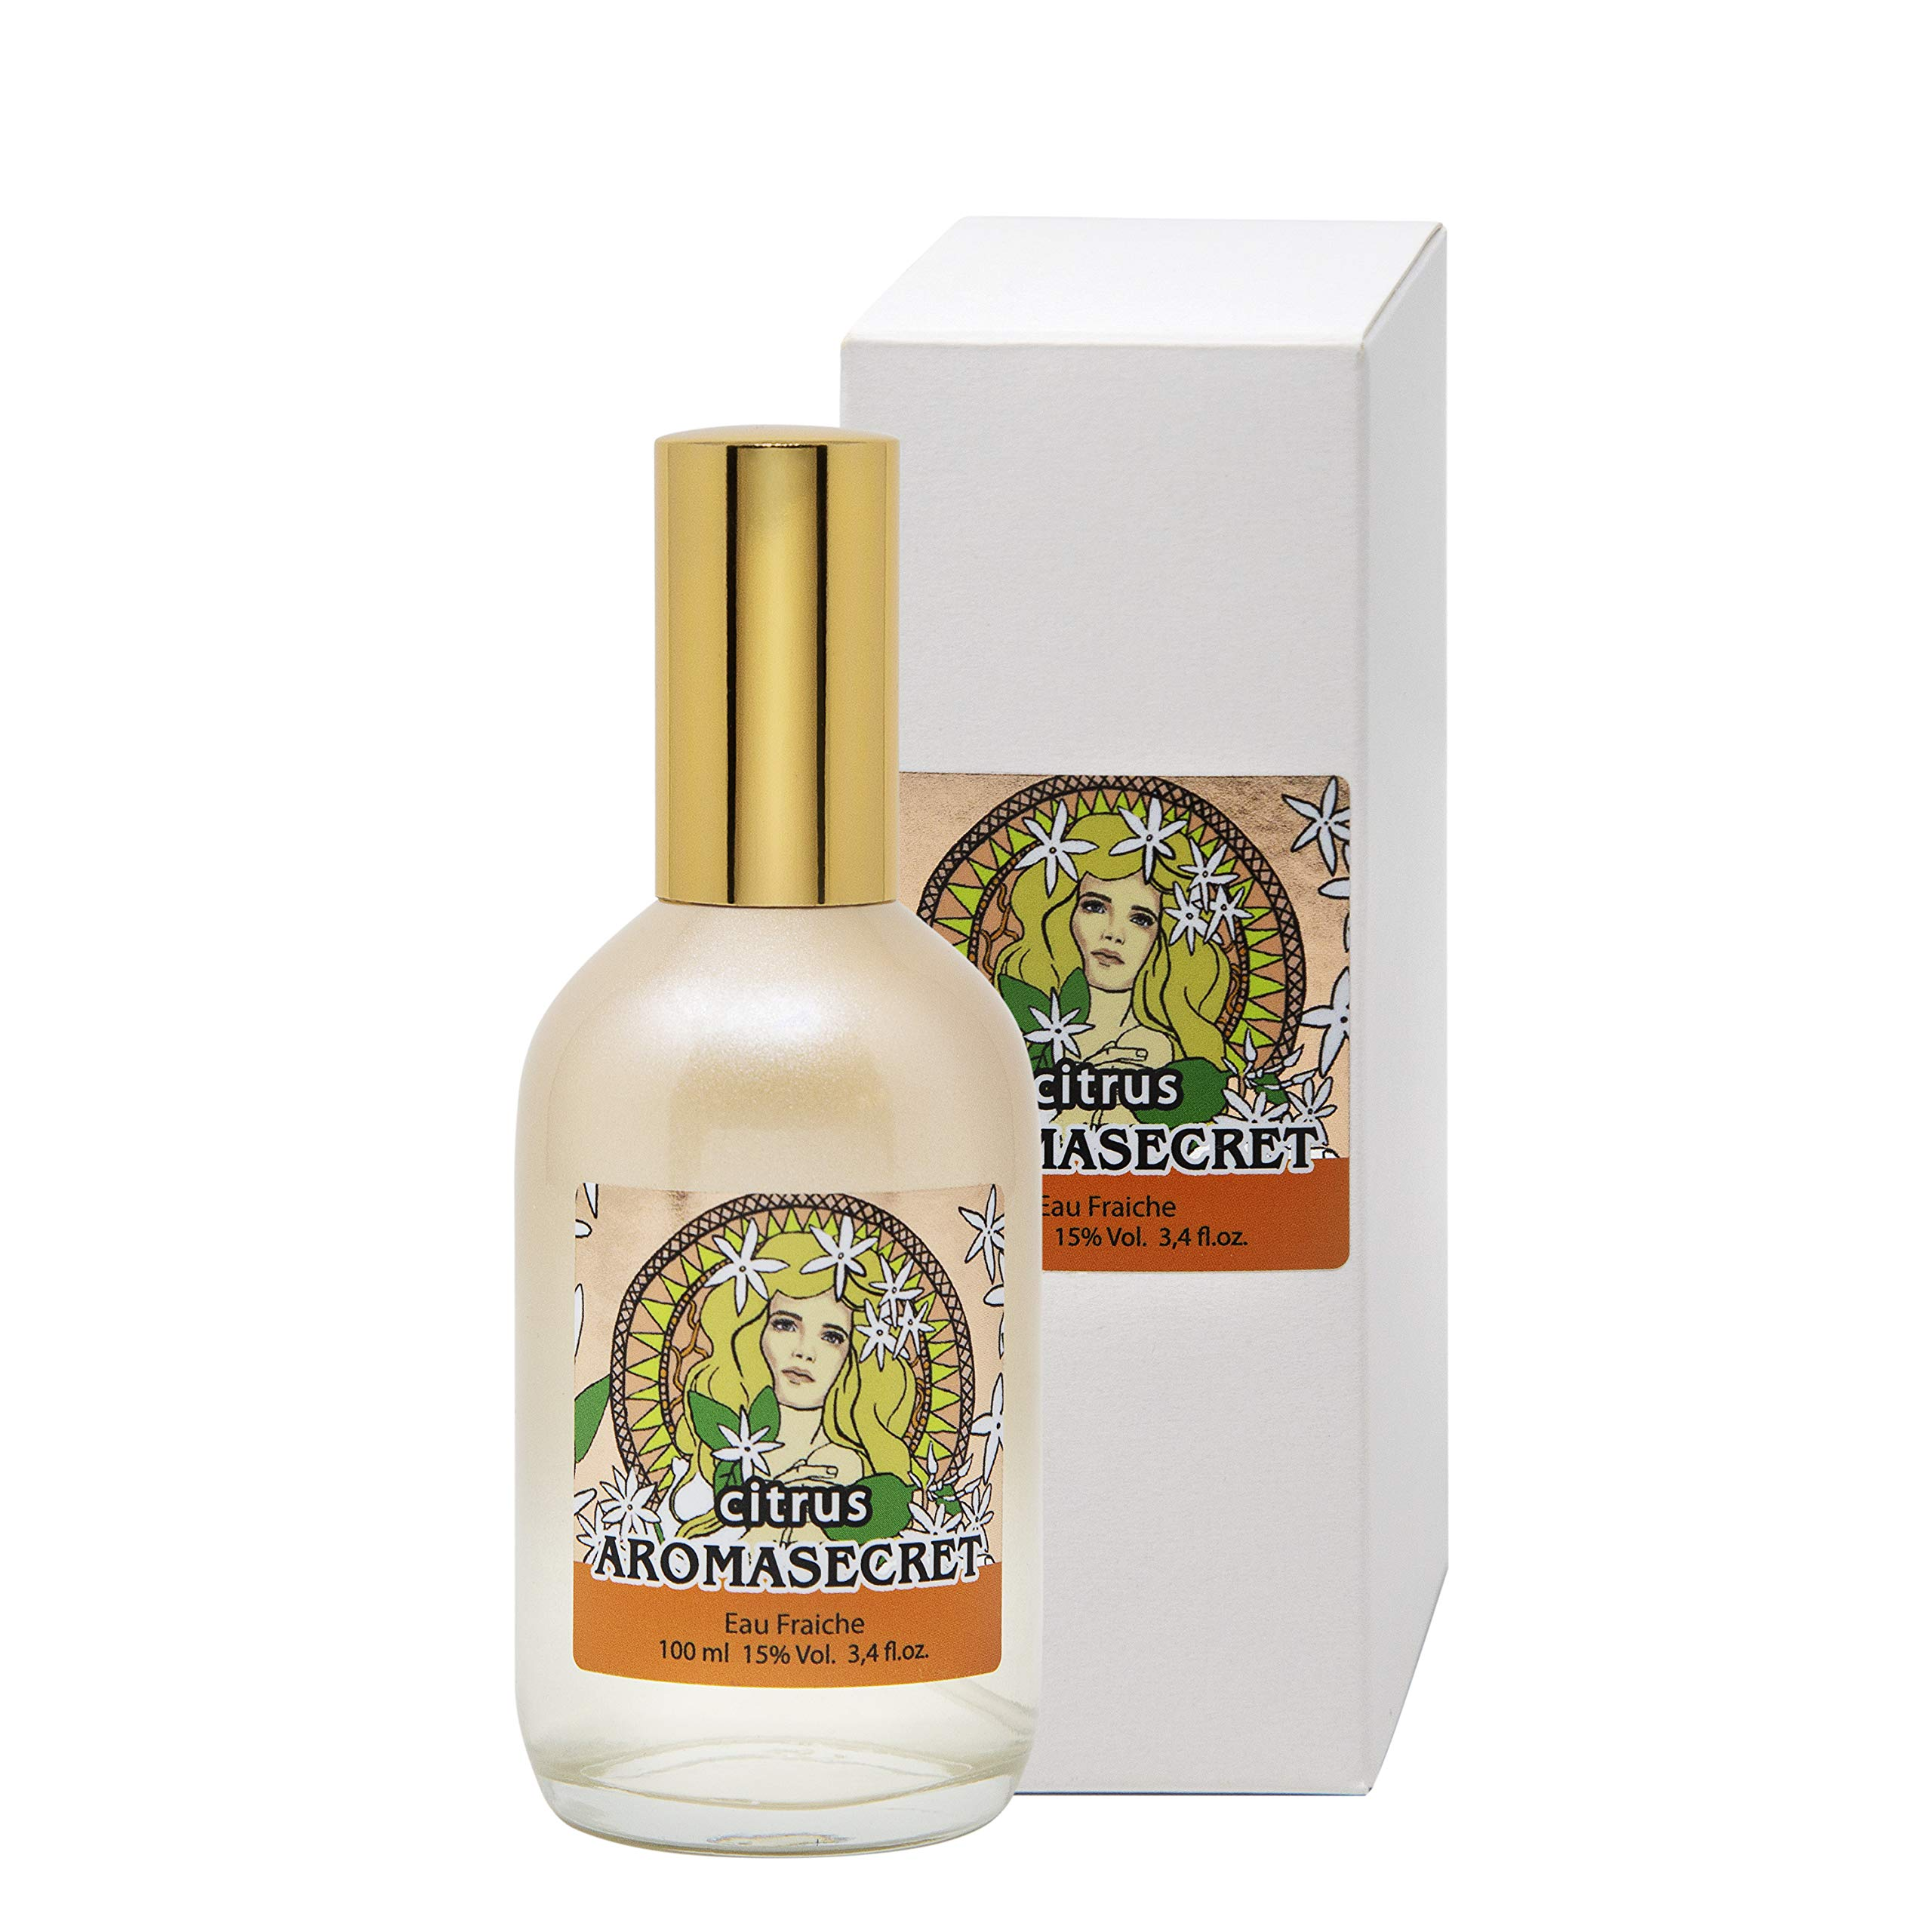 AROMASECRET Citrus Eau Fraiche/Fresh Fragrant Water Spray for Women, 100 ml bottle (3.4 fl.oz.) - NEW Perfume Conception by SERGIO NERO